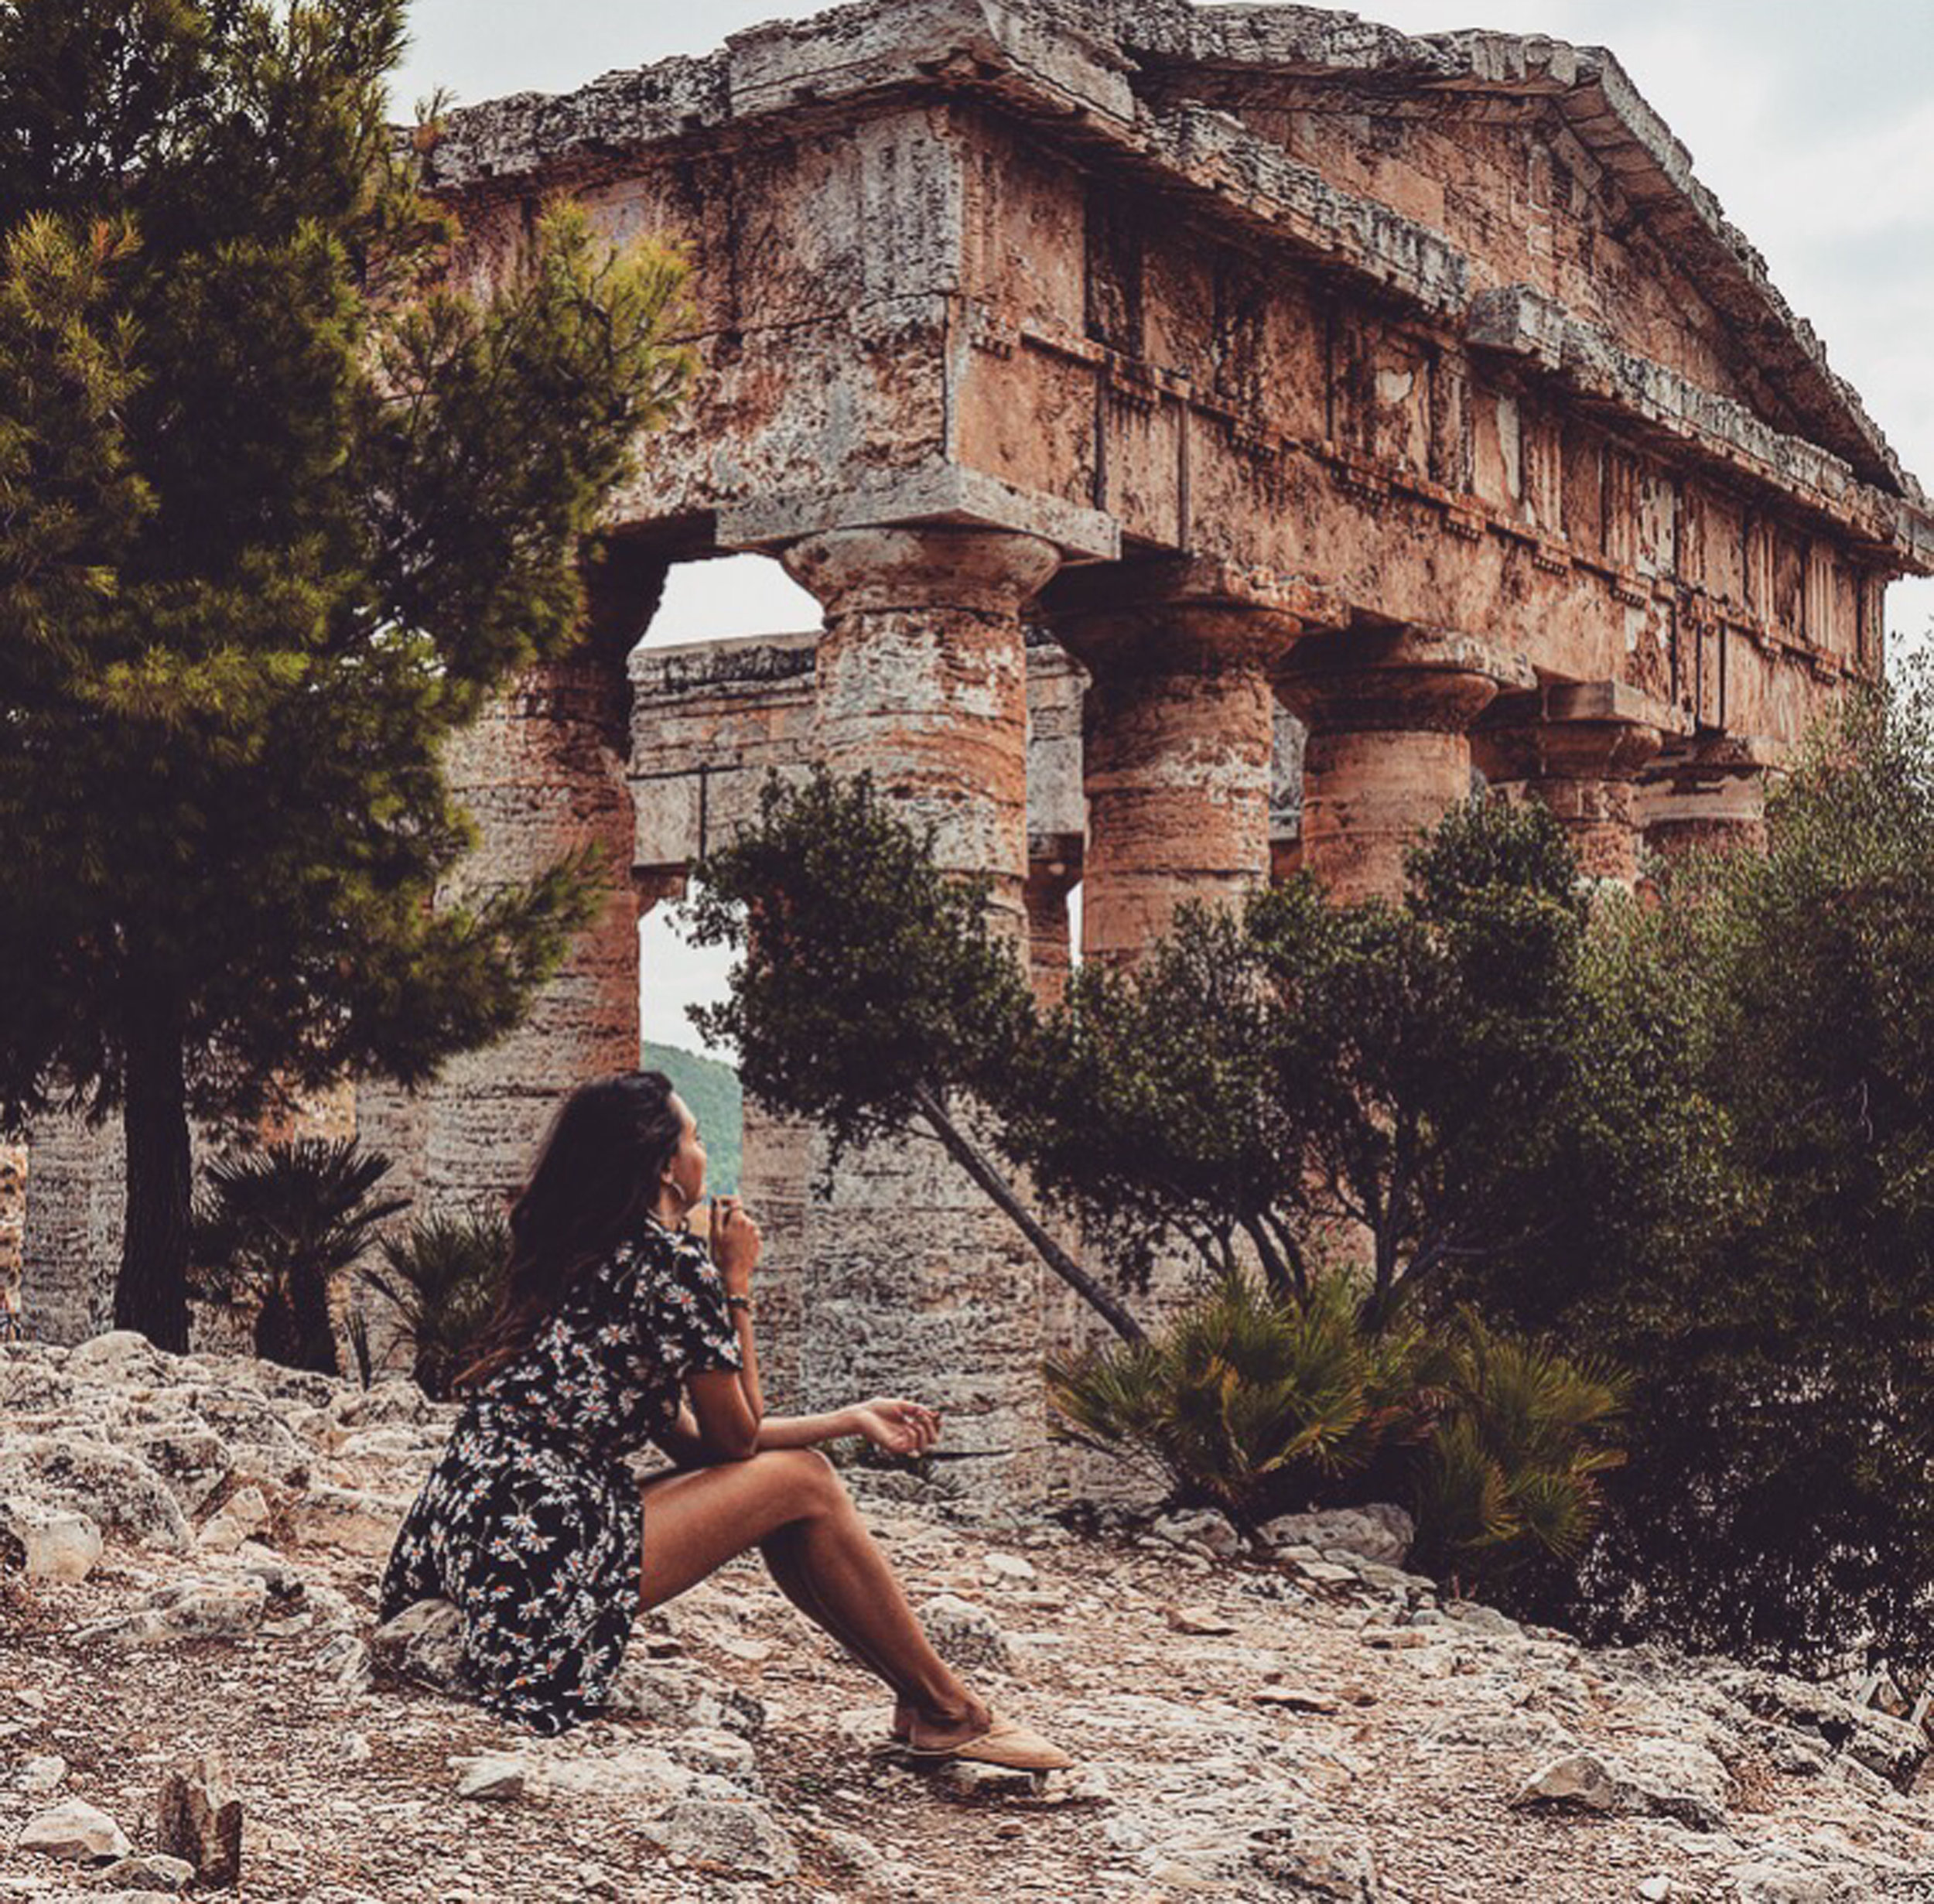 Sicily - Septembre 2017: Mia Dolce vita - it was the second time for me in Sicily and this last road-trip was magic. I started my journey in Palermo and visited Marsala, Agrigente, Caltagirone, Ragusa, Modica, Syracusa, Catania, Taormina... and all the beautiful spots all around. It was an amazing trip, full of artistic culture, dolces, fashion & good living.